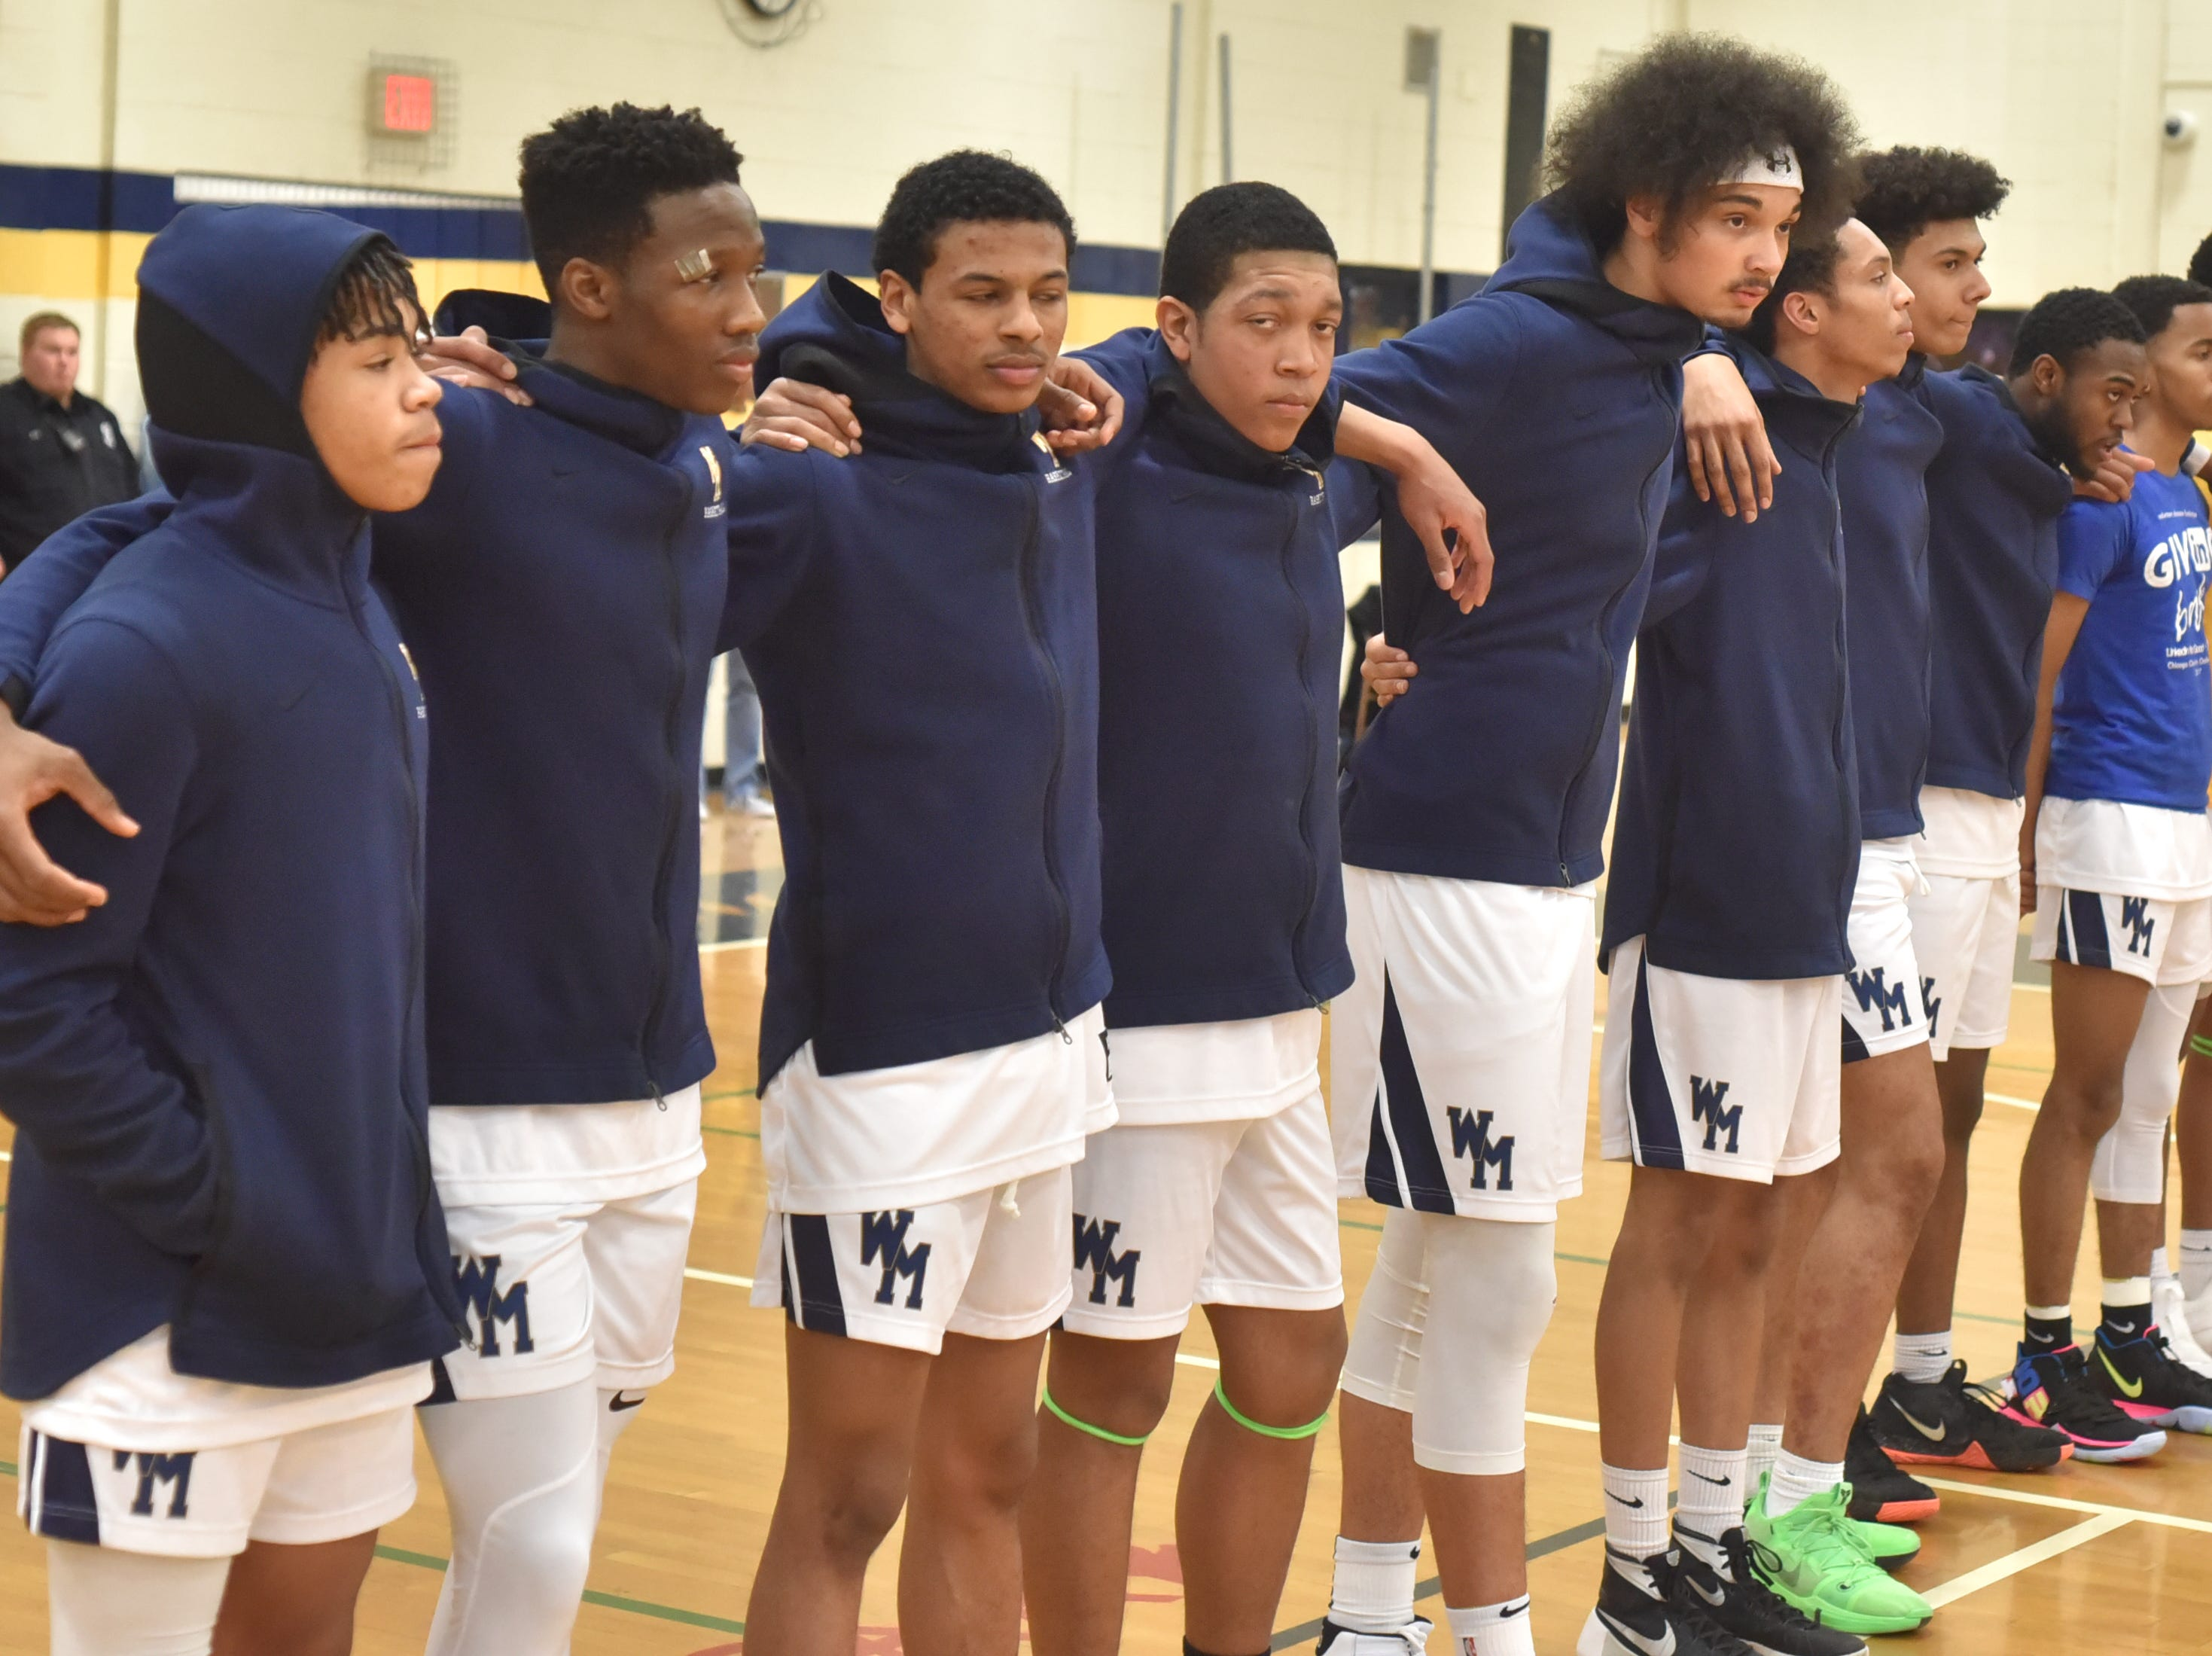 The Wayne Memorial boys varsity team stands together for the playing of the National Anthem.